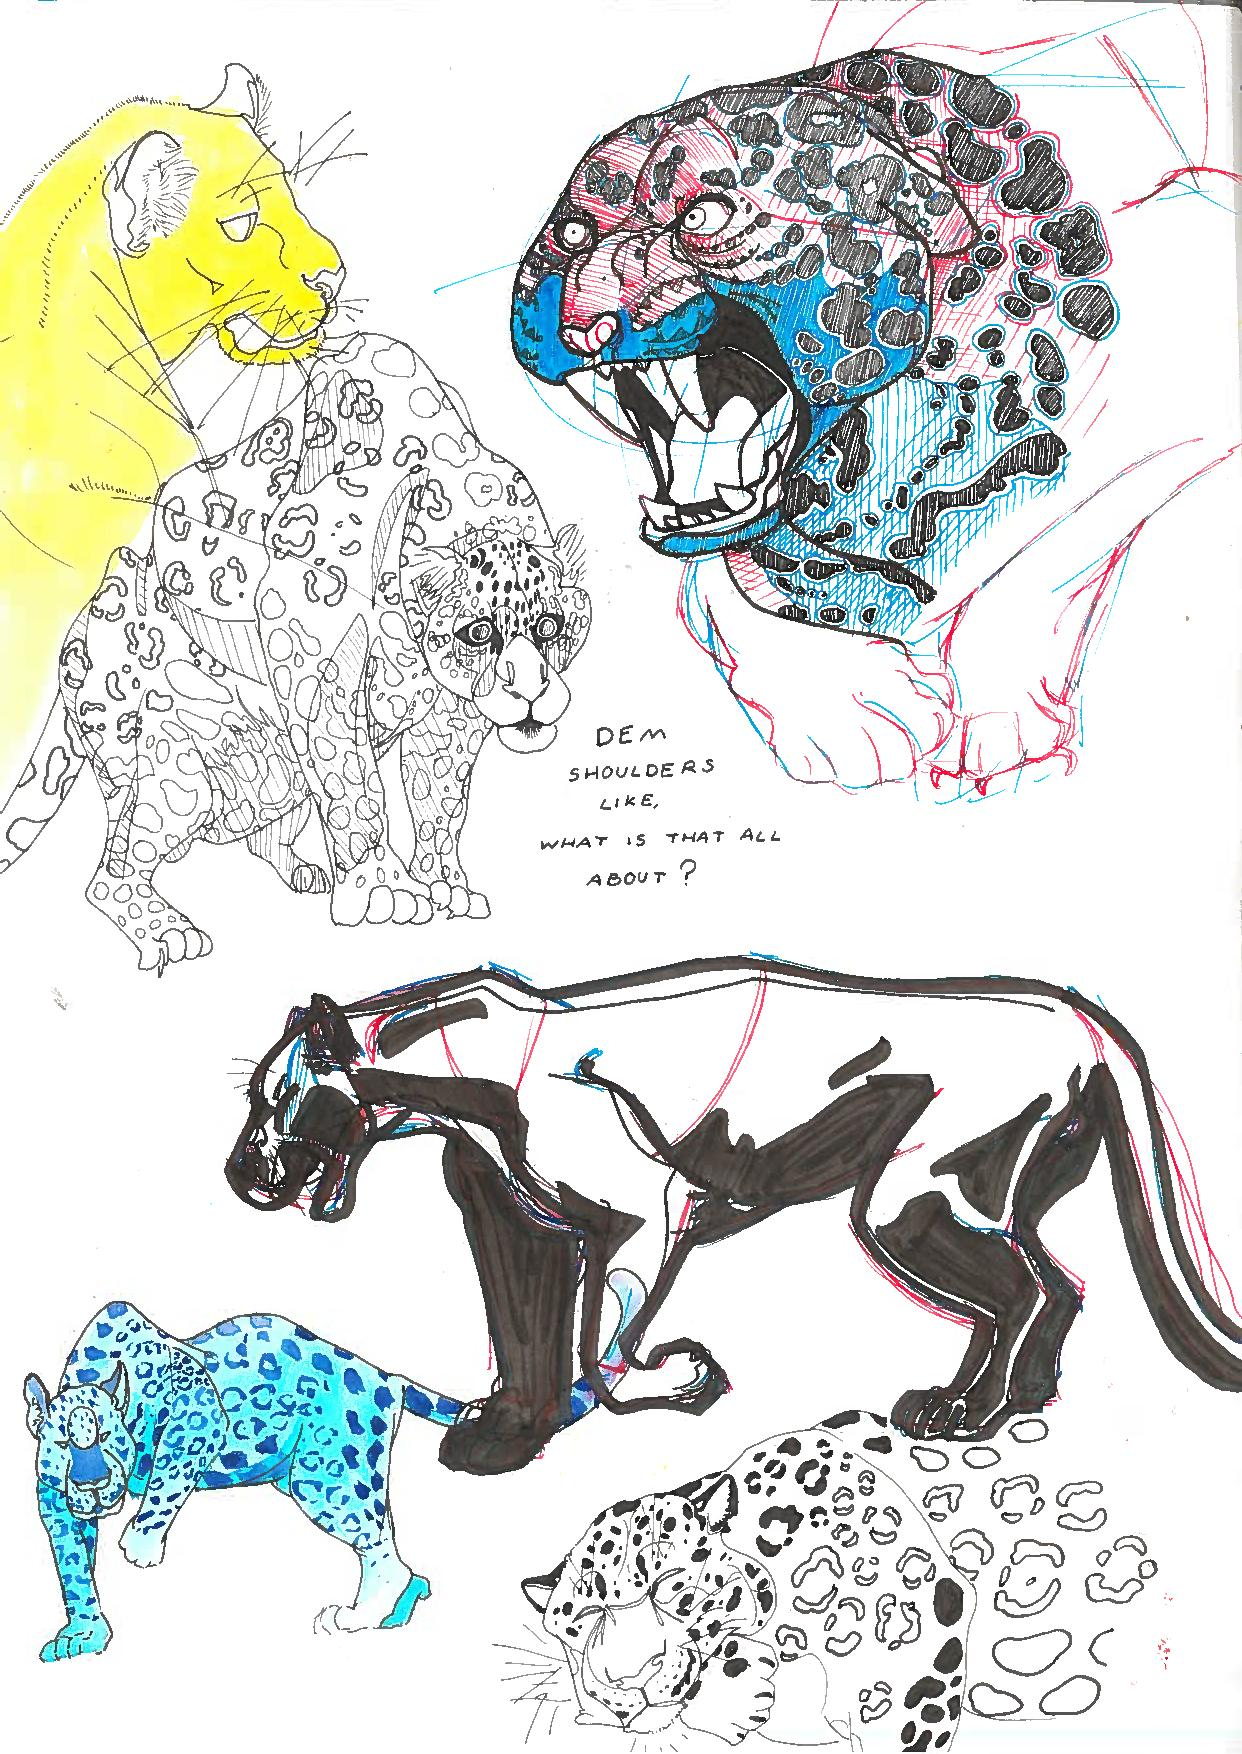 Jaguars and Big Cats Sketchbook Page